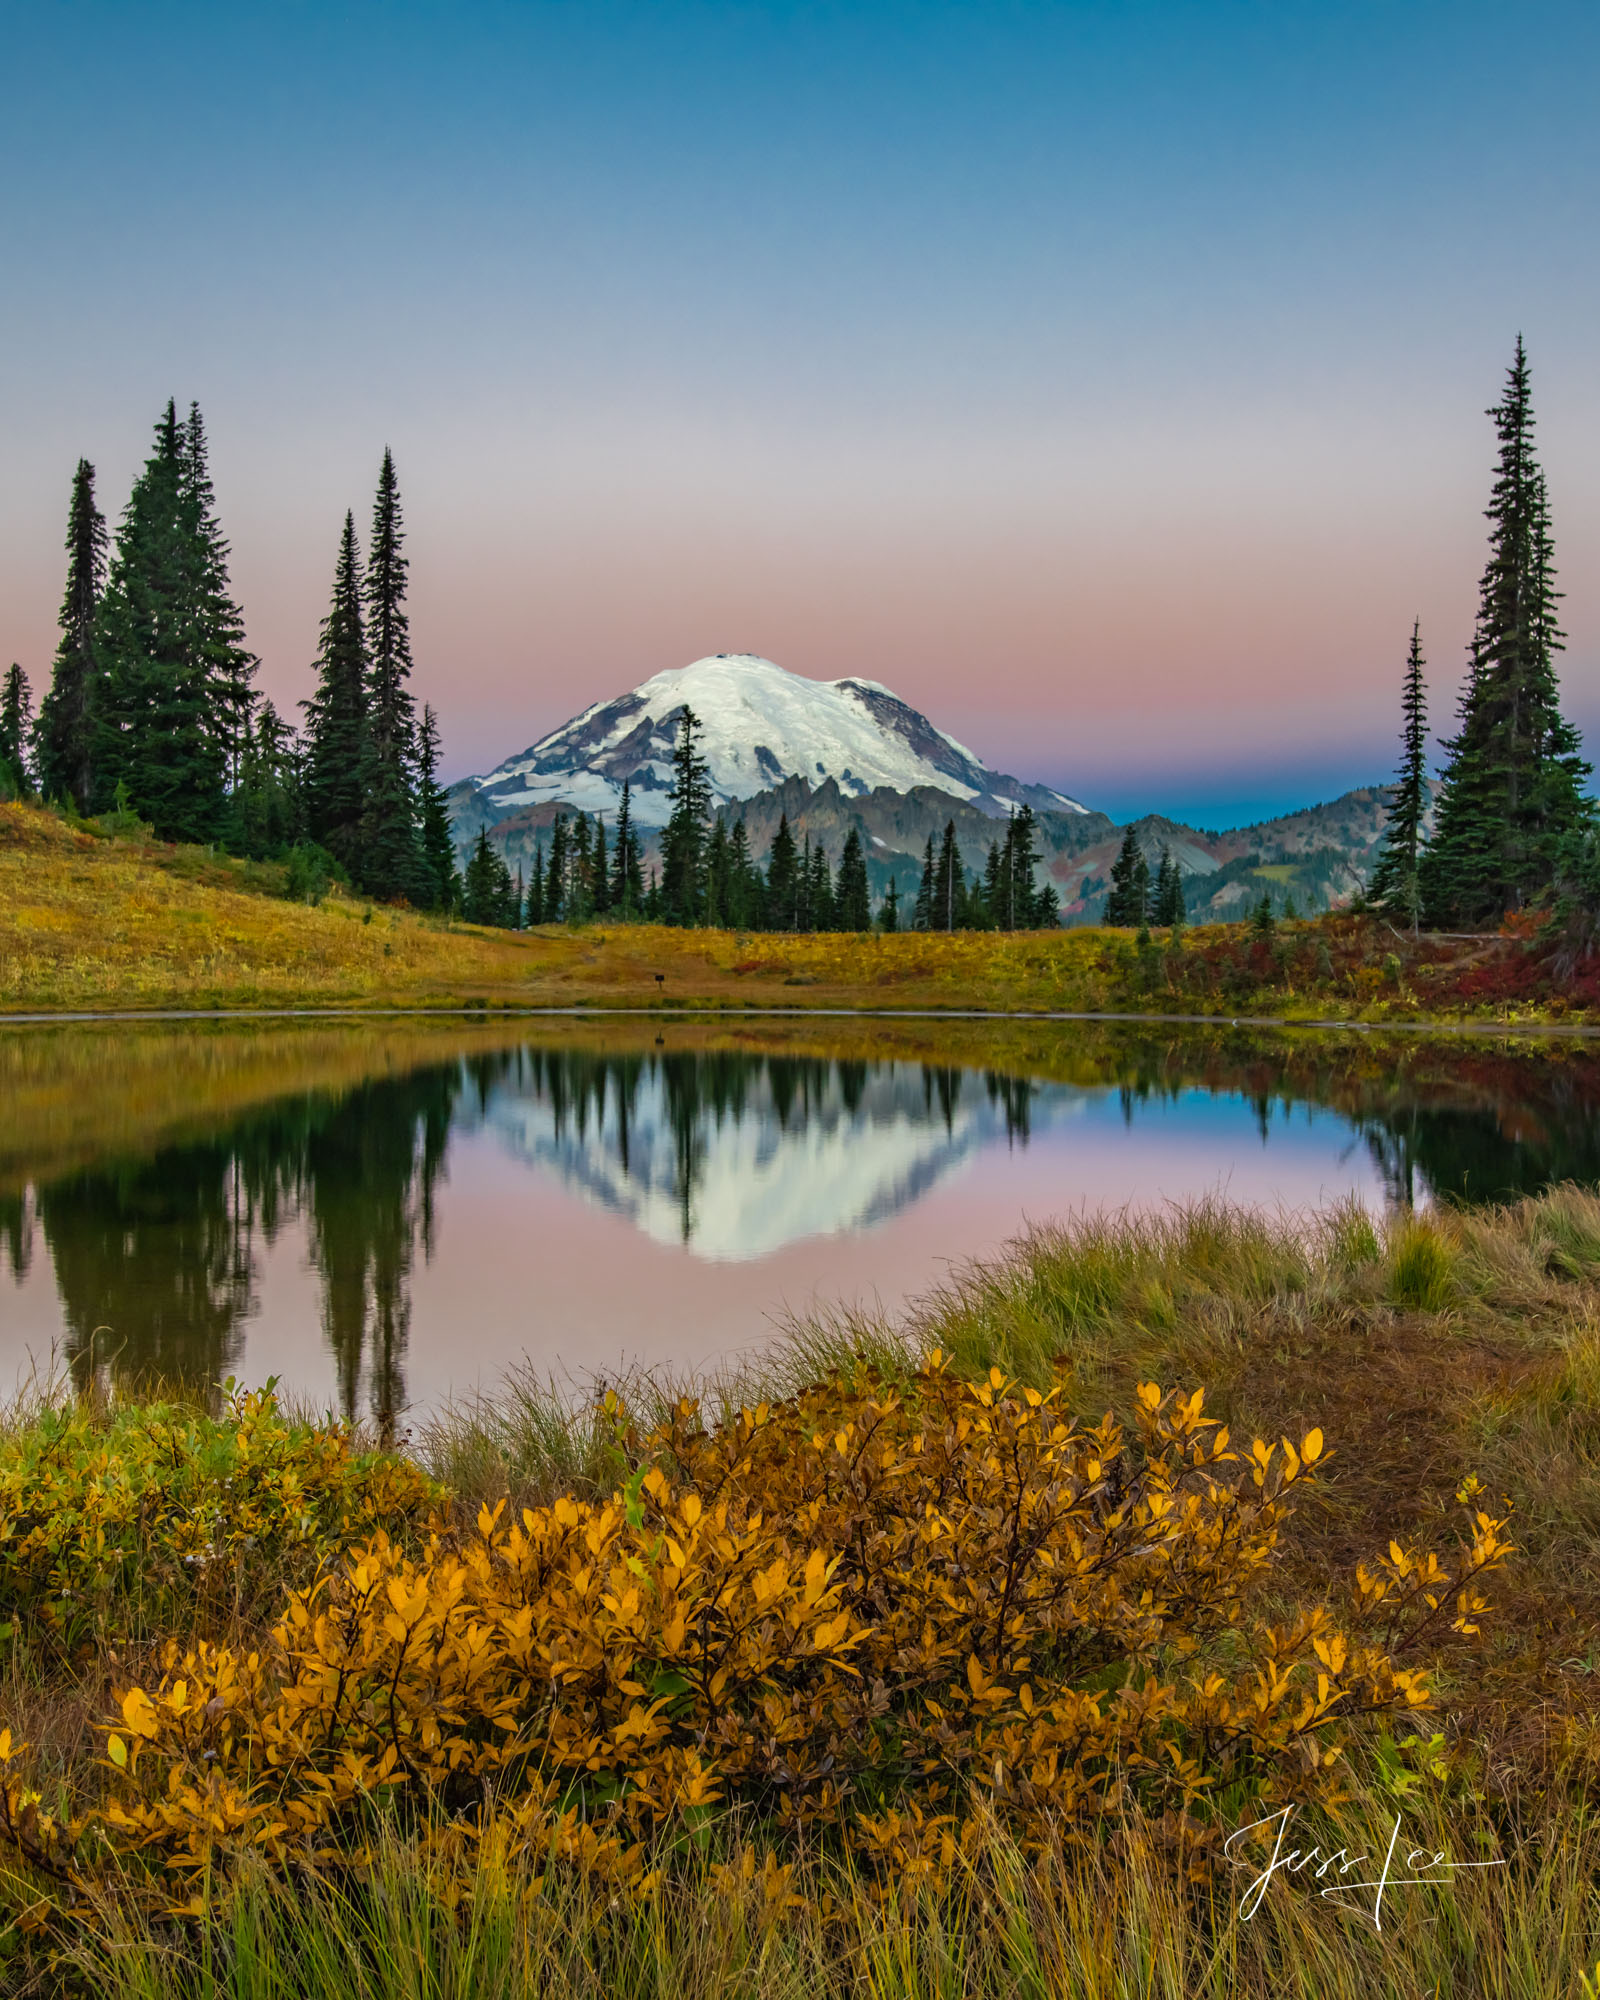 photo of Mount Rainier, reflection, Washington landscape photography, Pacific Northwest, PNW, evergreens, pine trees, lake, water, fall, autumn colors, fine art print, nature photography, National Par, photo